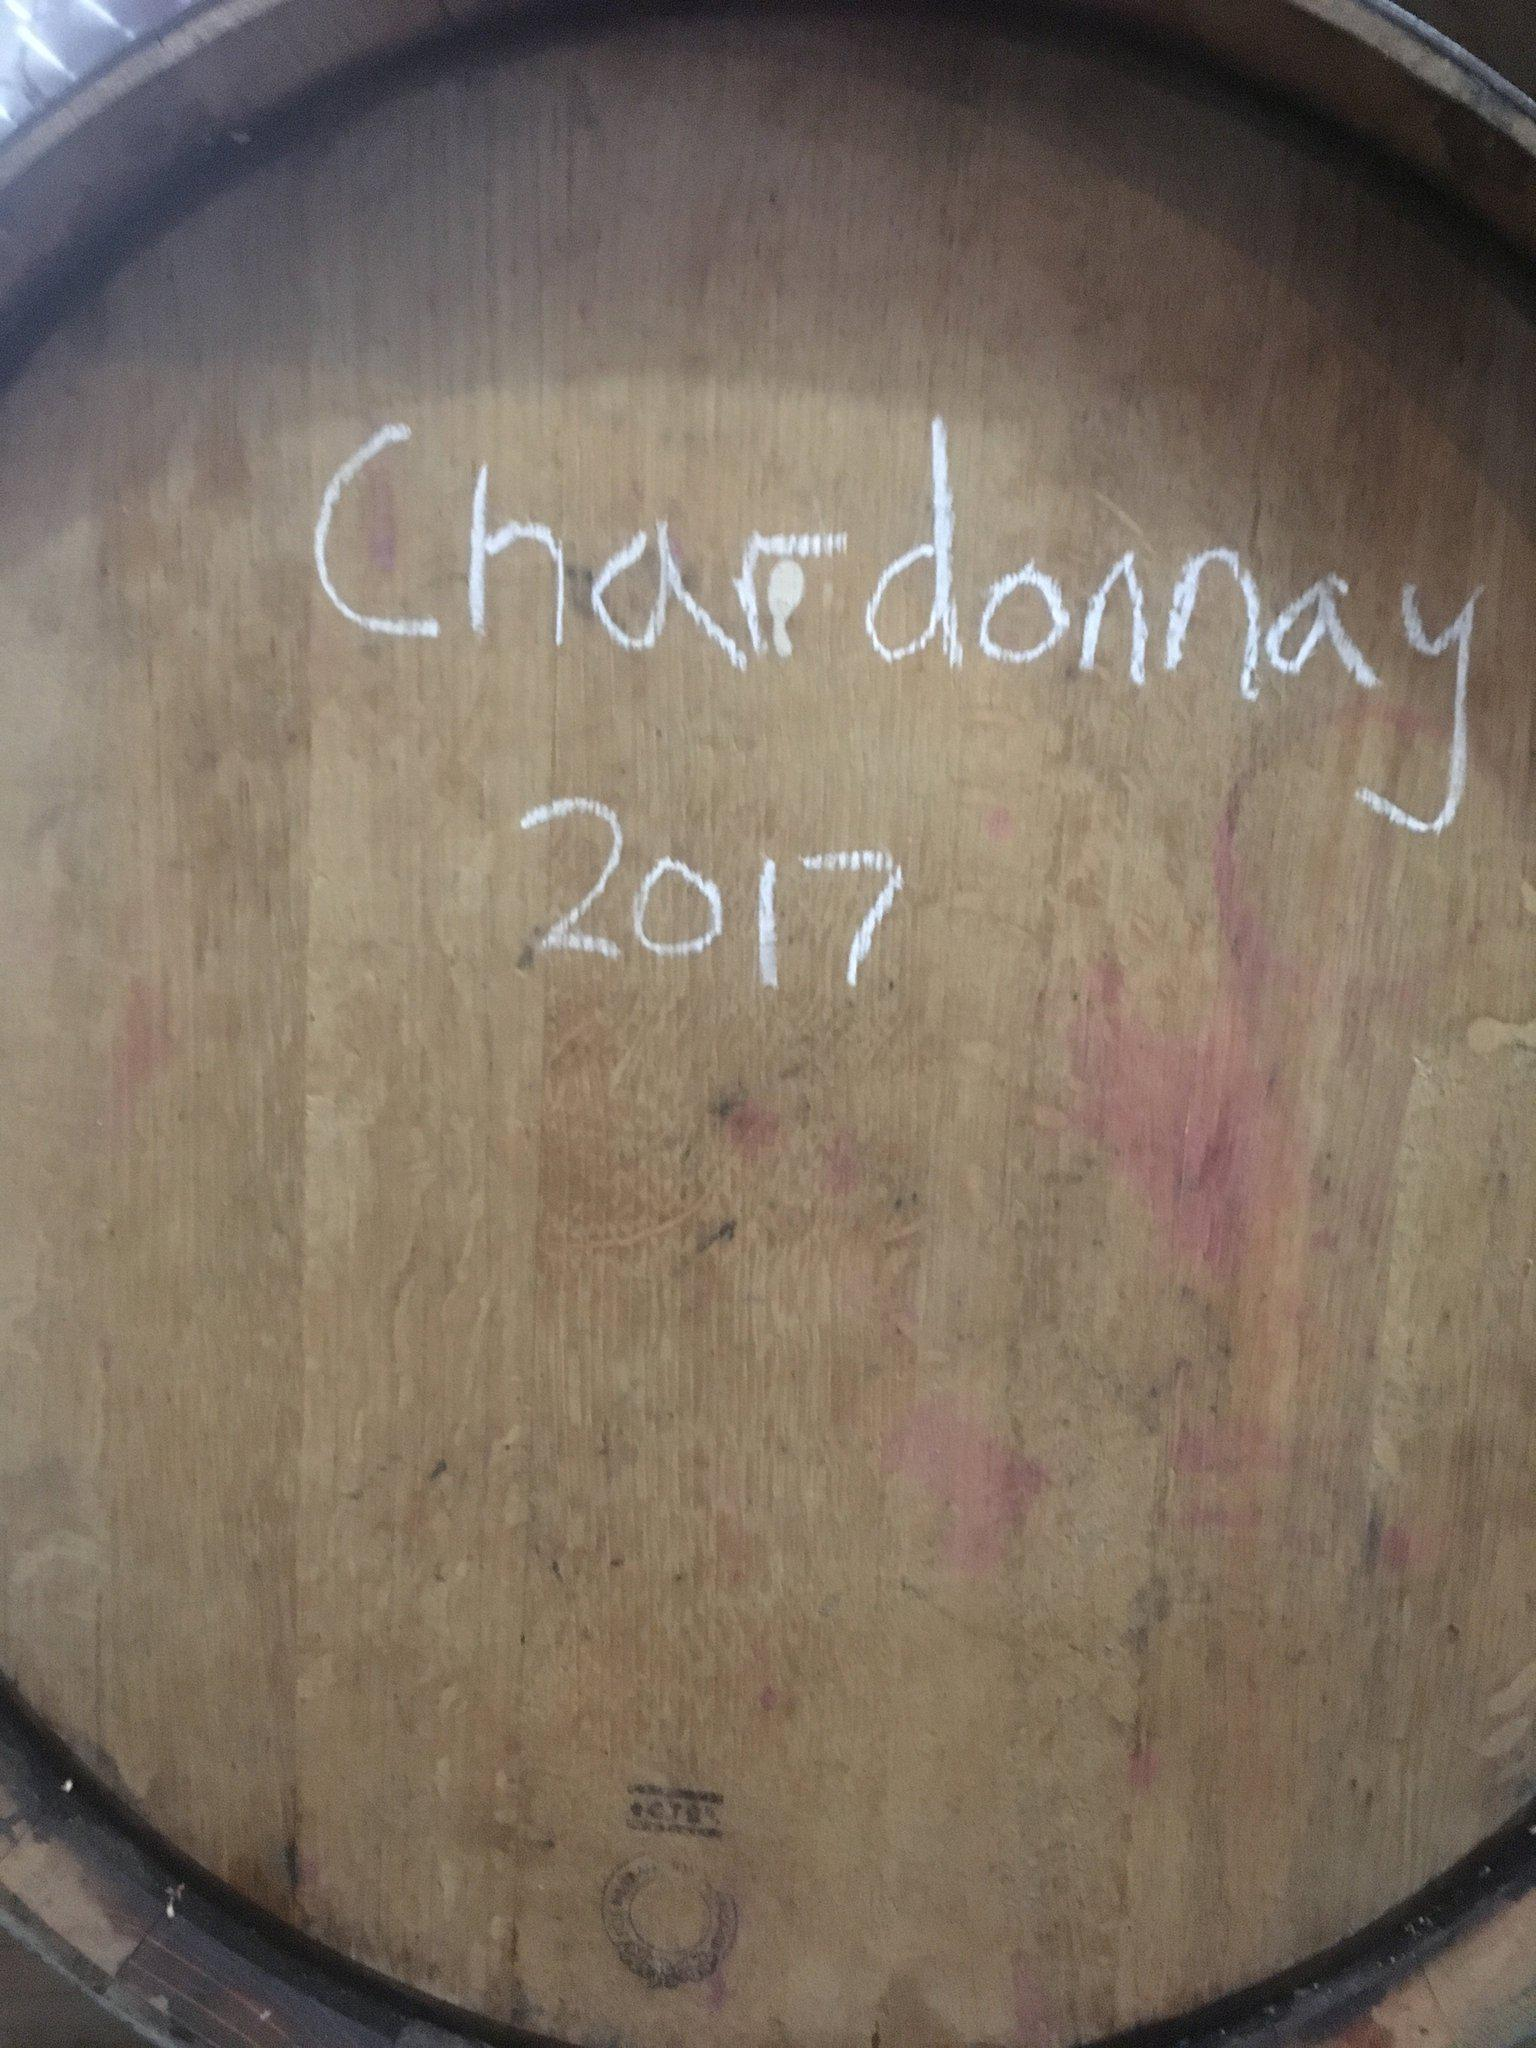 """The Cull Chardonnay"" Still in Barrel"